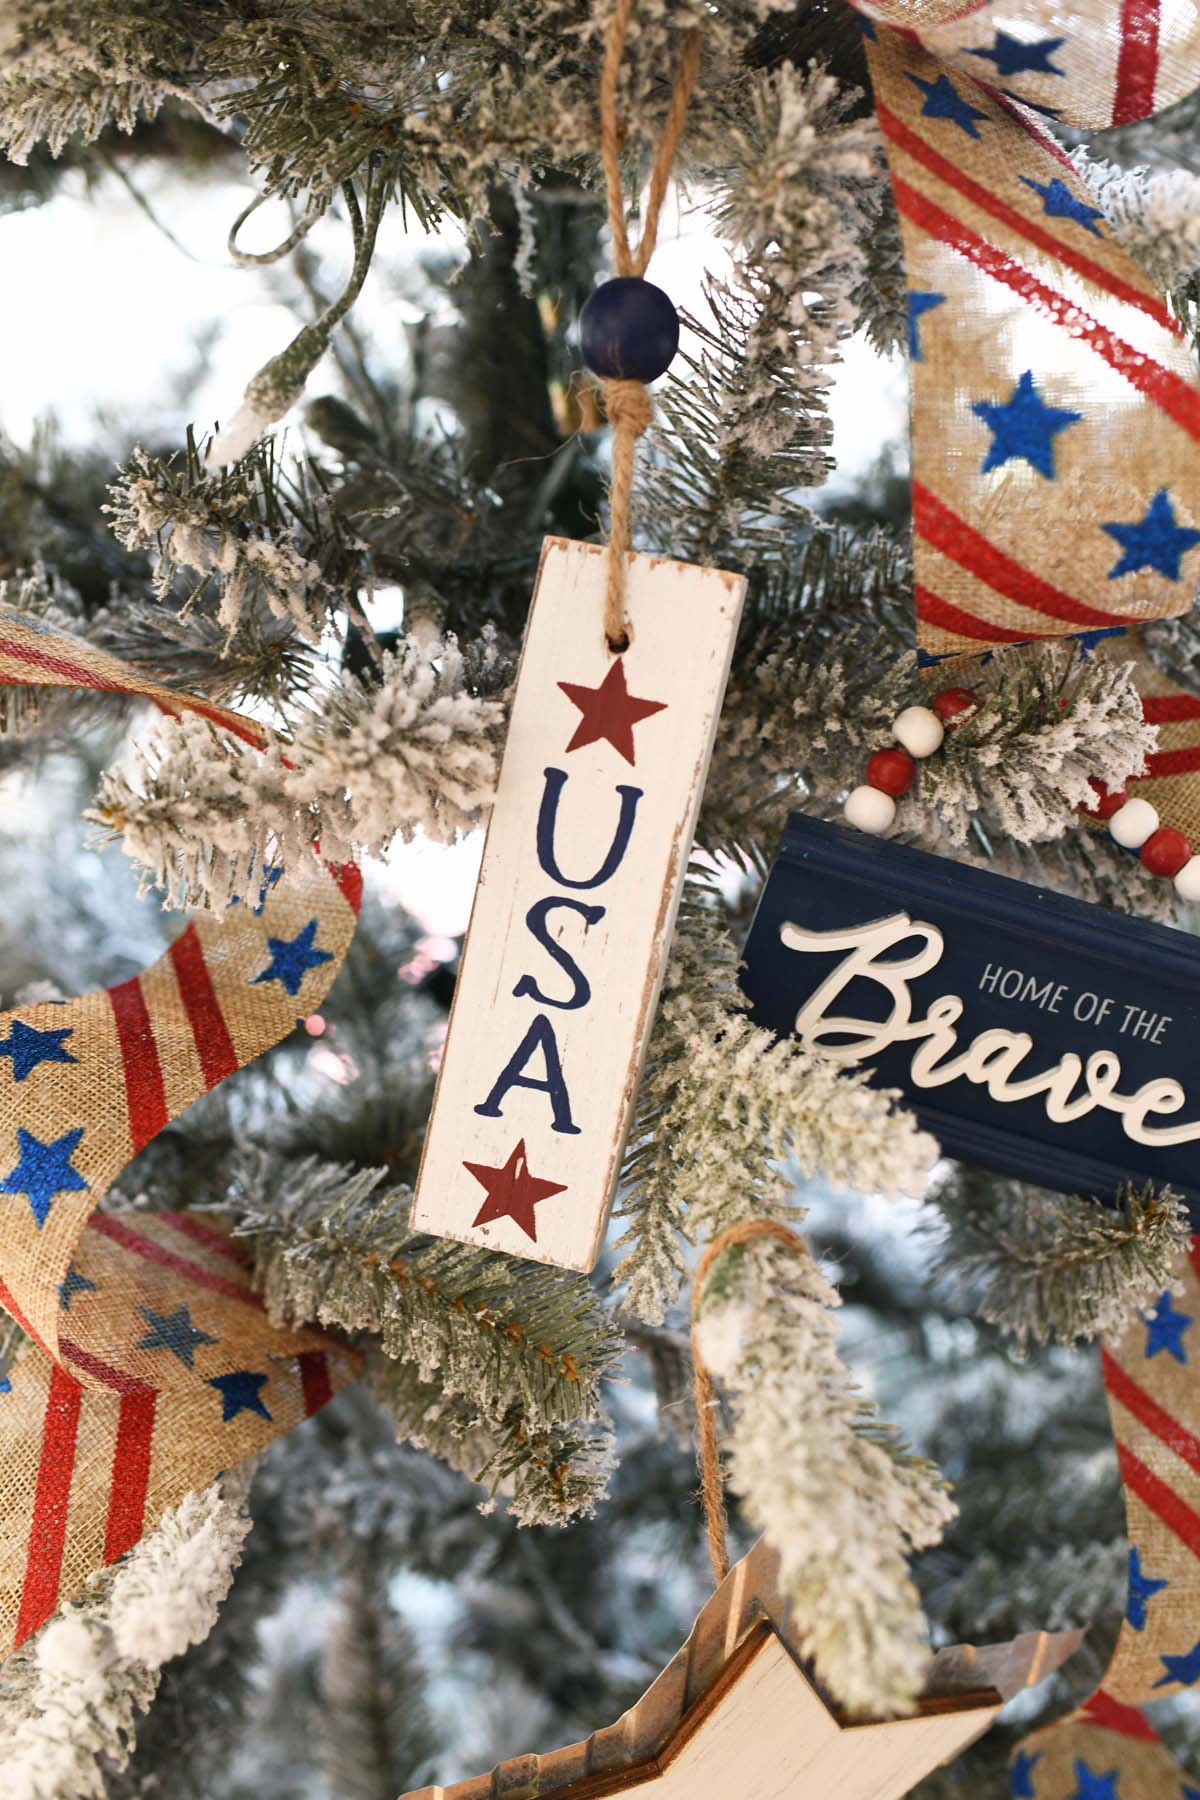 USA wood ornament on a tree.